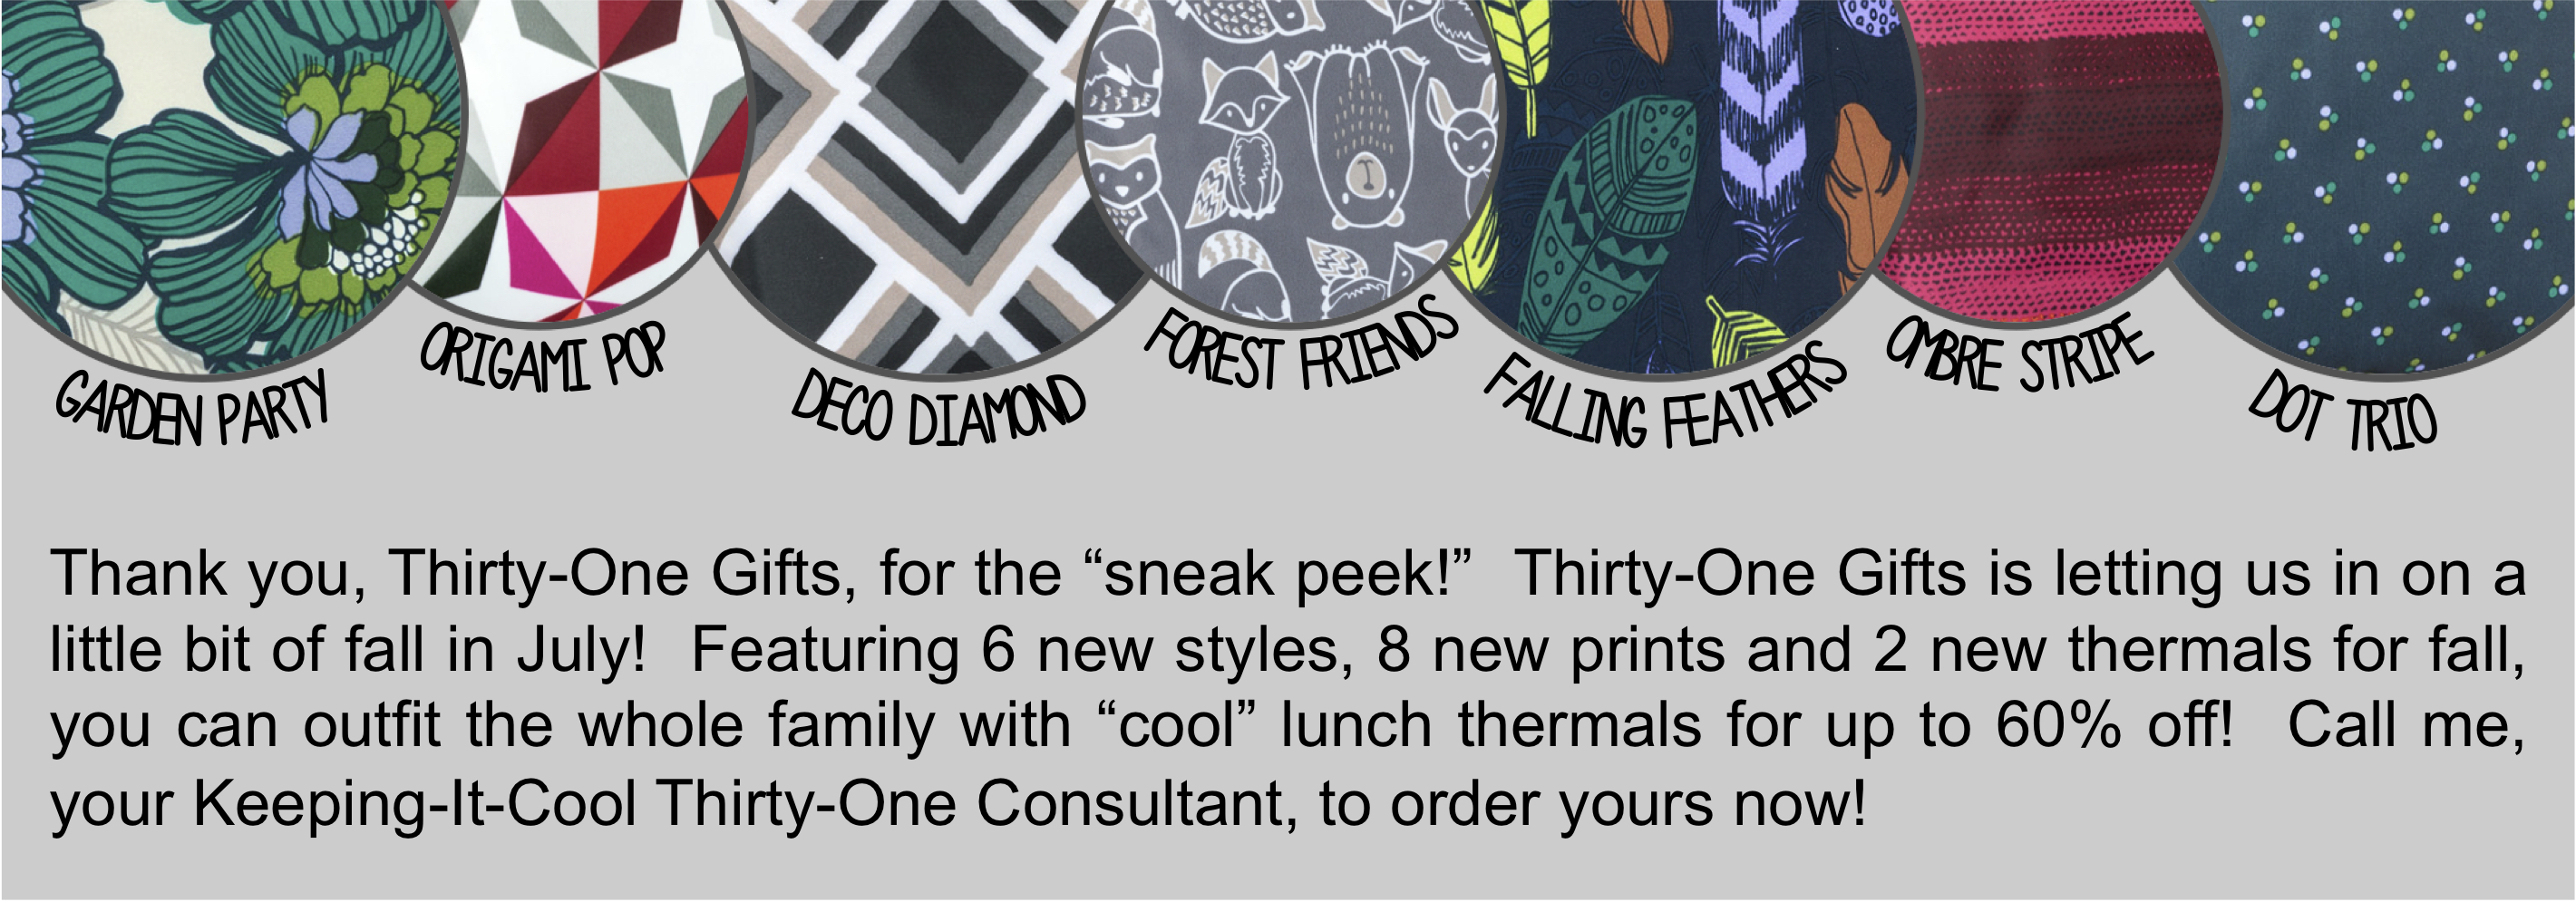 Thirty-One Gifts - Keeping It Cool